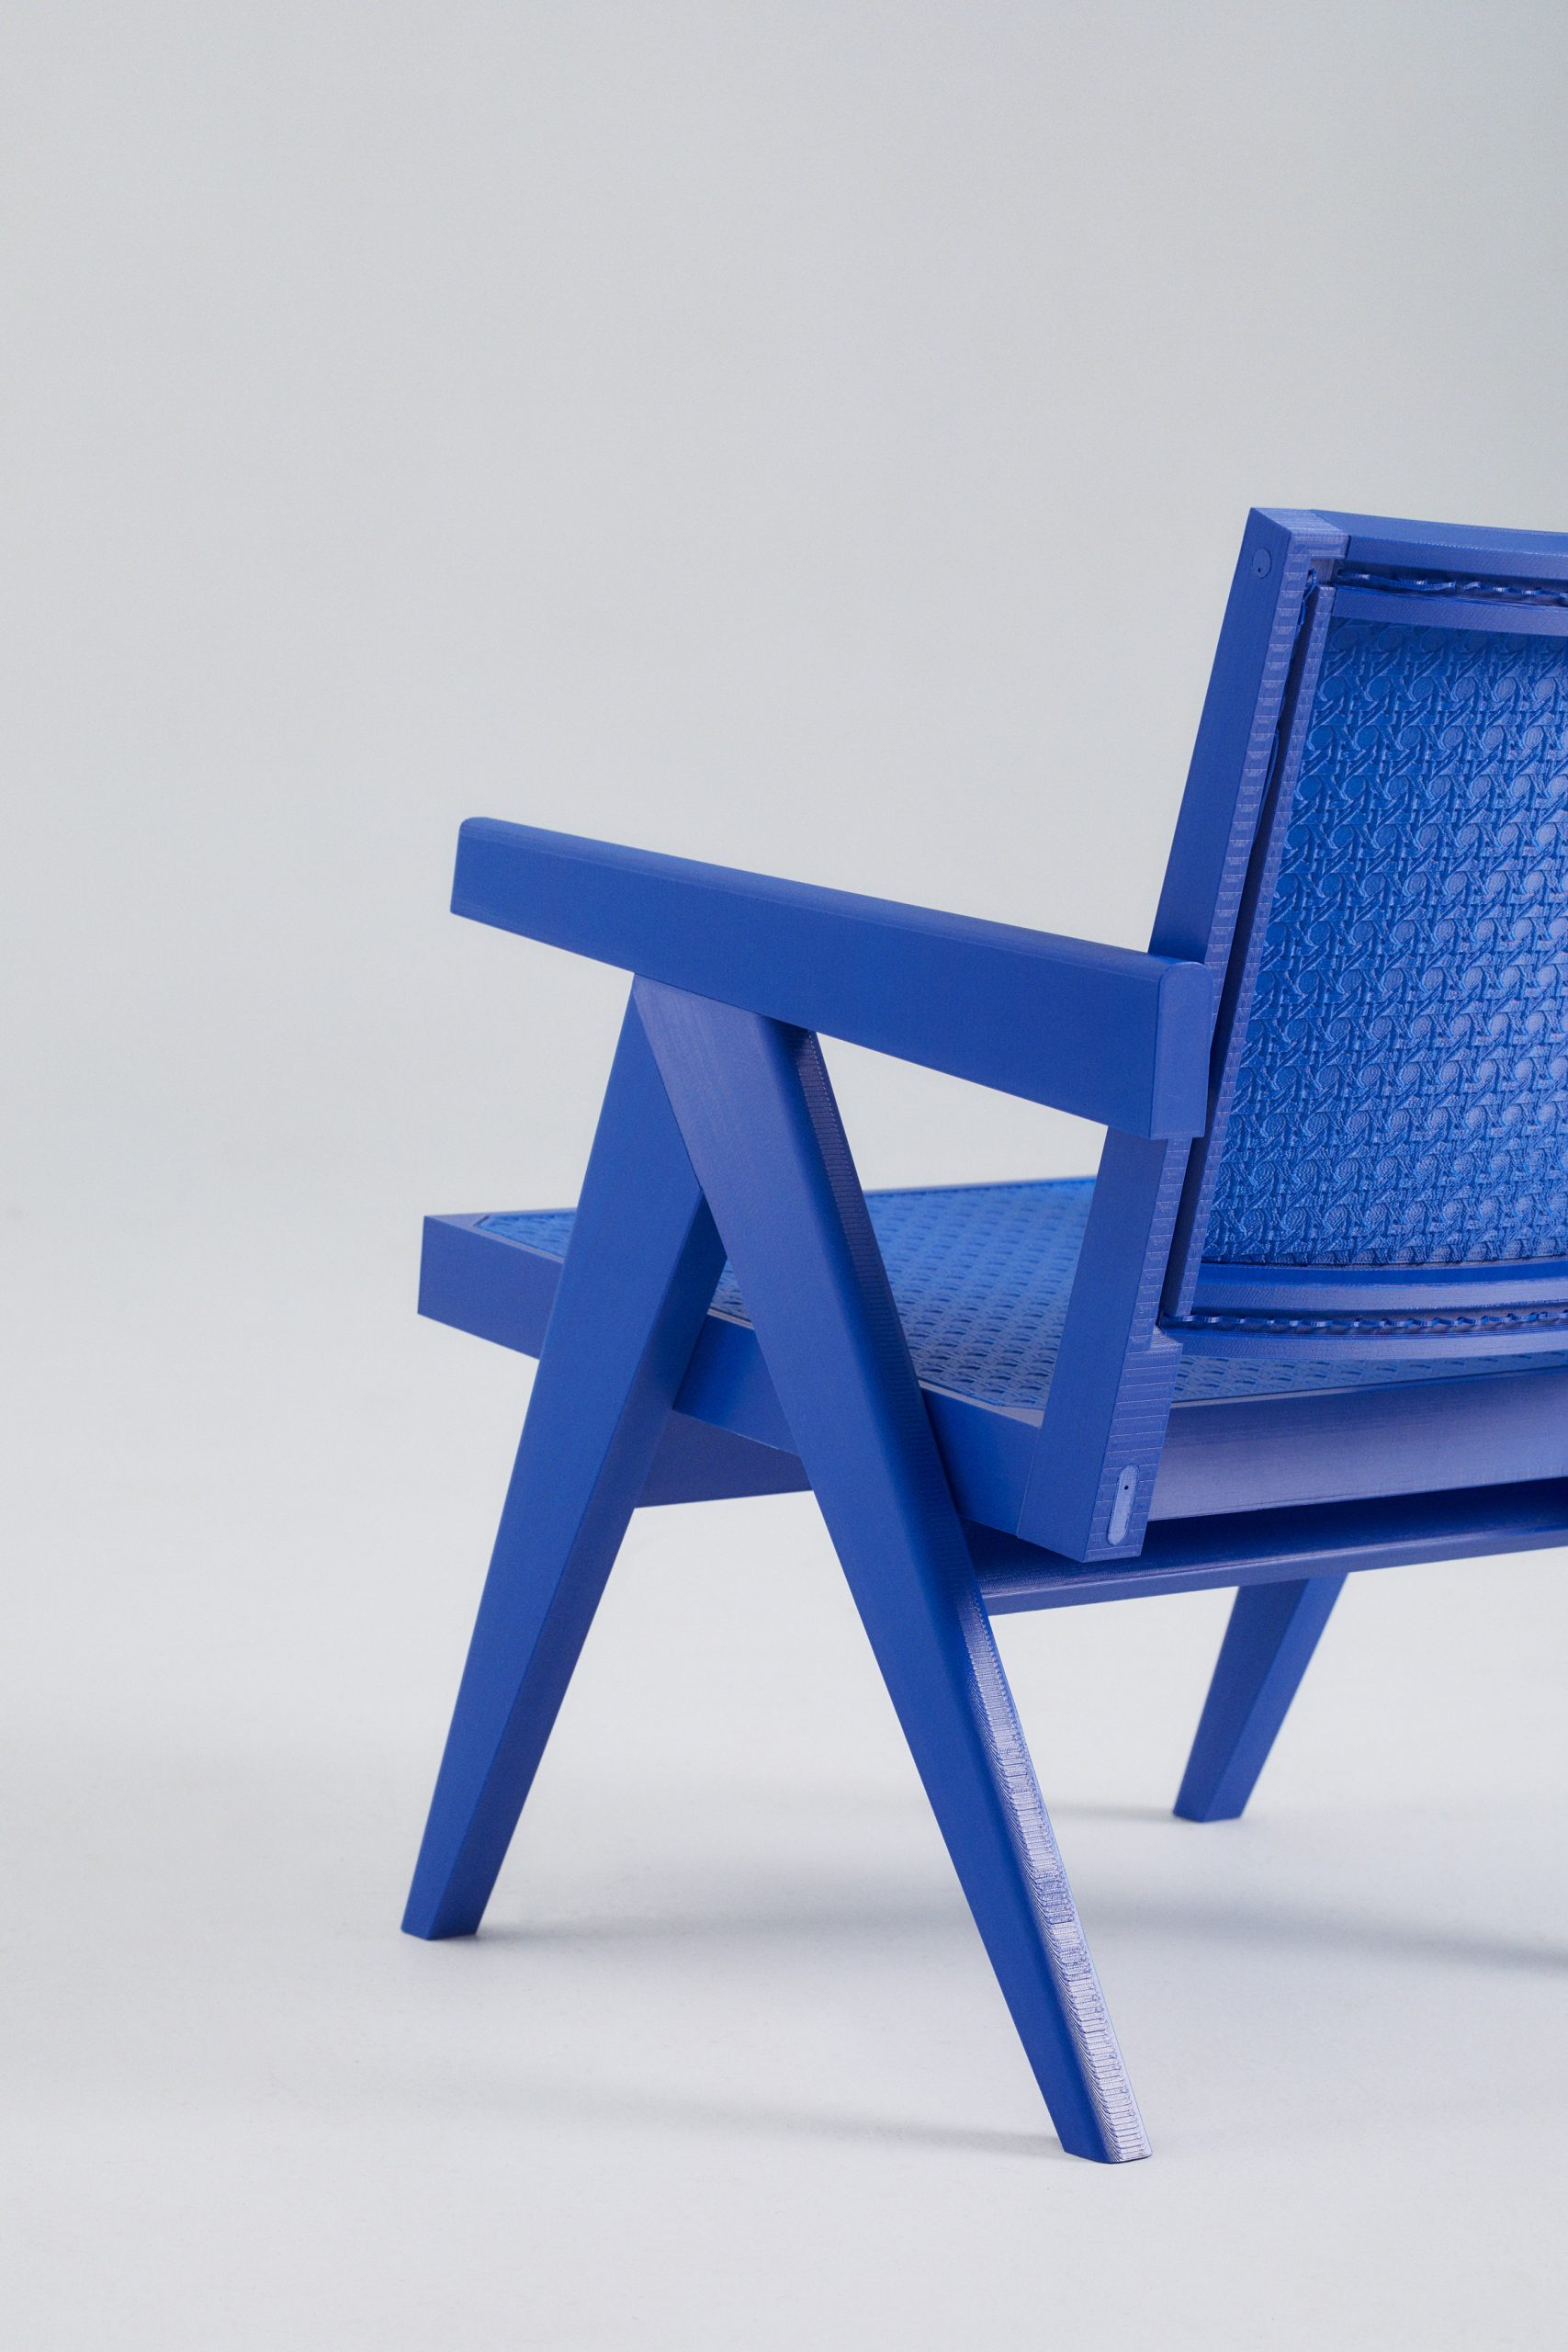 Pierre Jeanneret's Chandigarh Easy Chair redesign